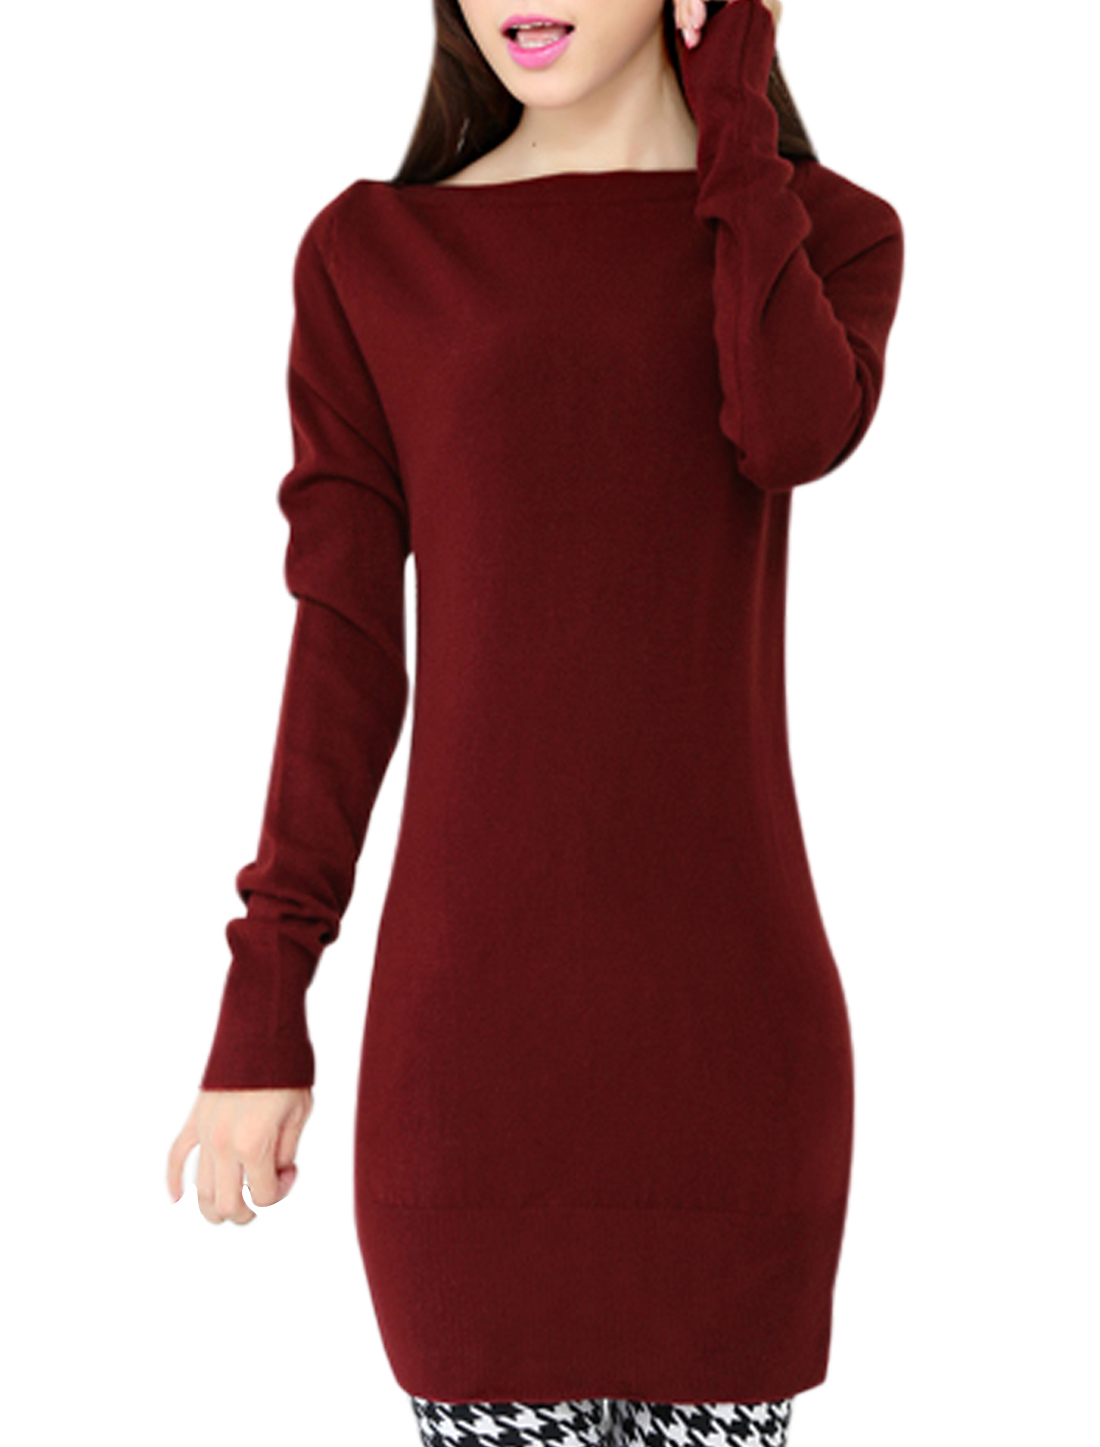 Fashion Long Sleeves Slipover Burgundy Tunic Knit Top for Women S